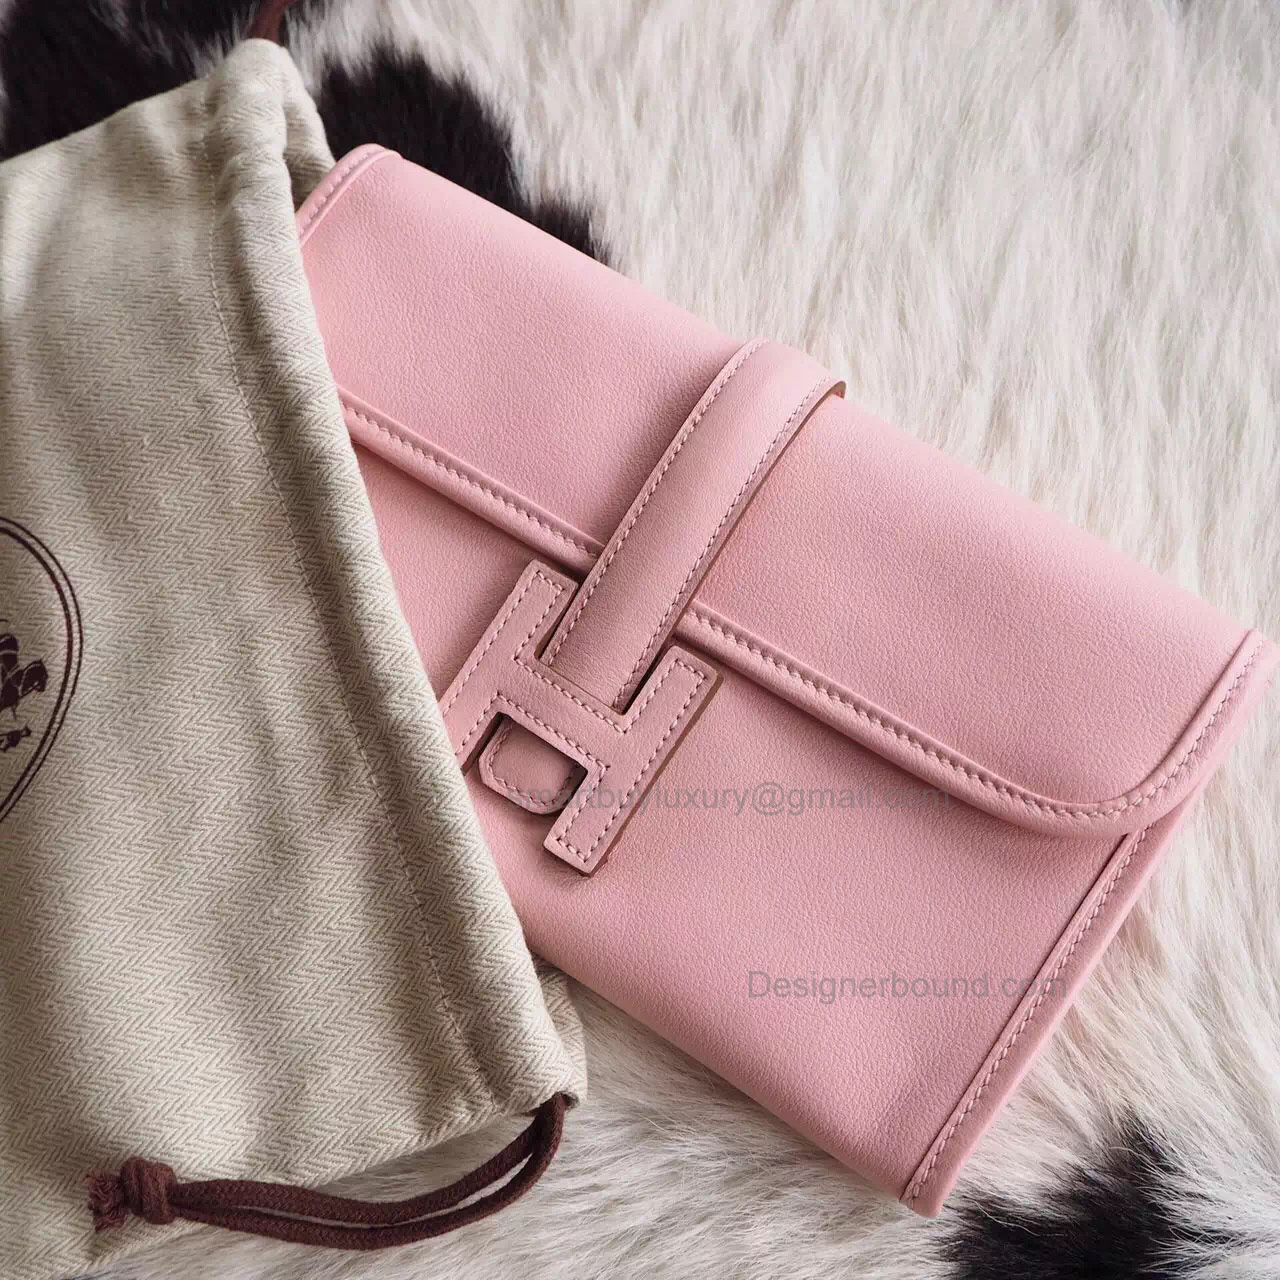 Copy Hermes Jige Duo Mini Clutch Handmade in Rose Sakura 3q Swift Calfskin